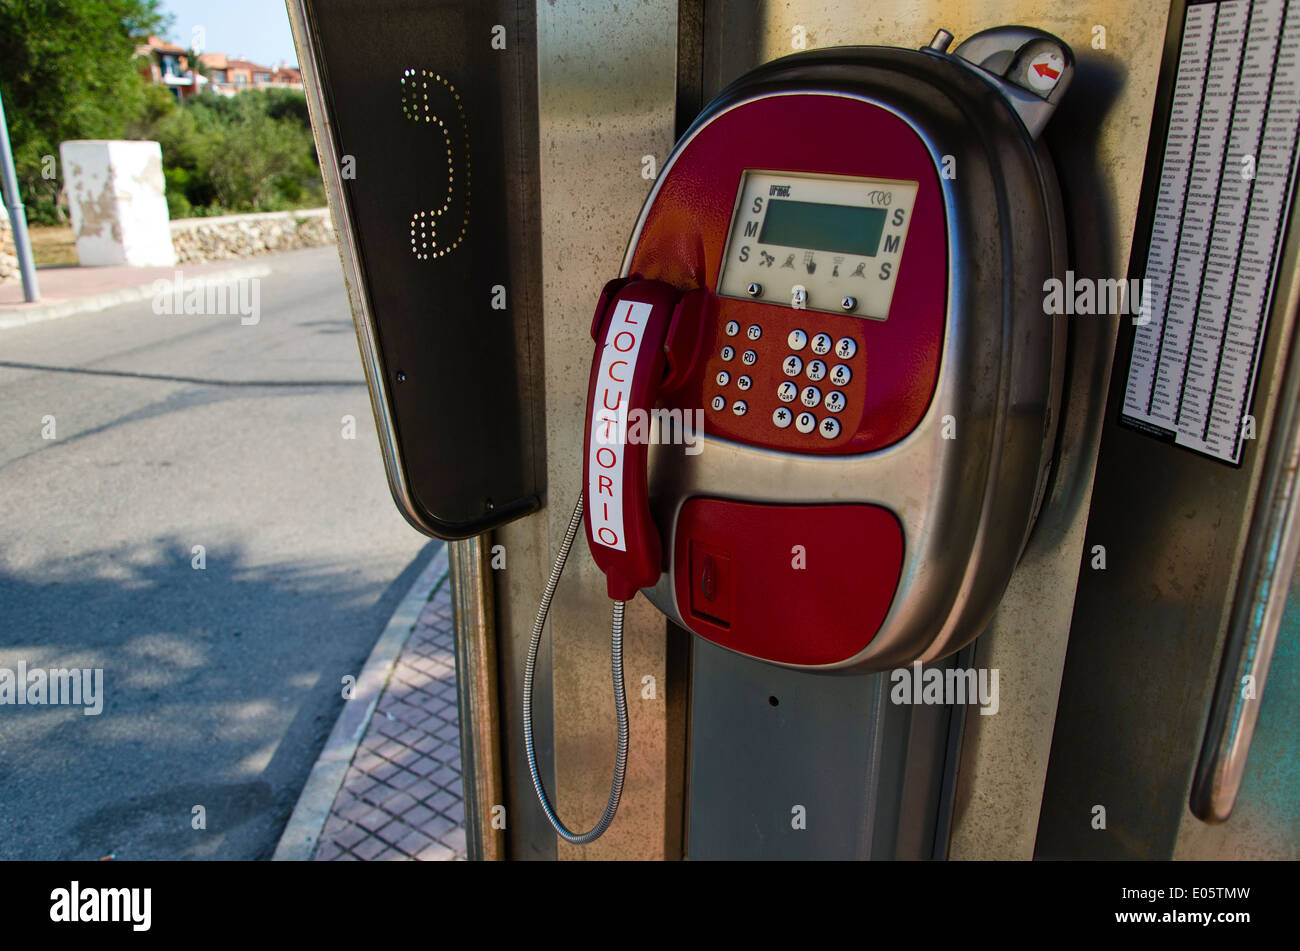 Spanish Telephone kiosk - Stock Image